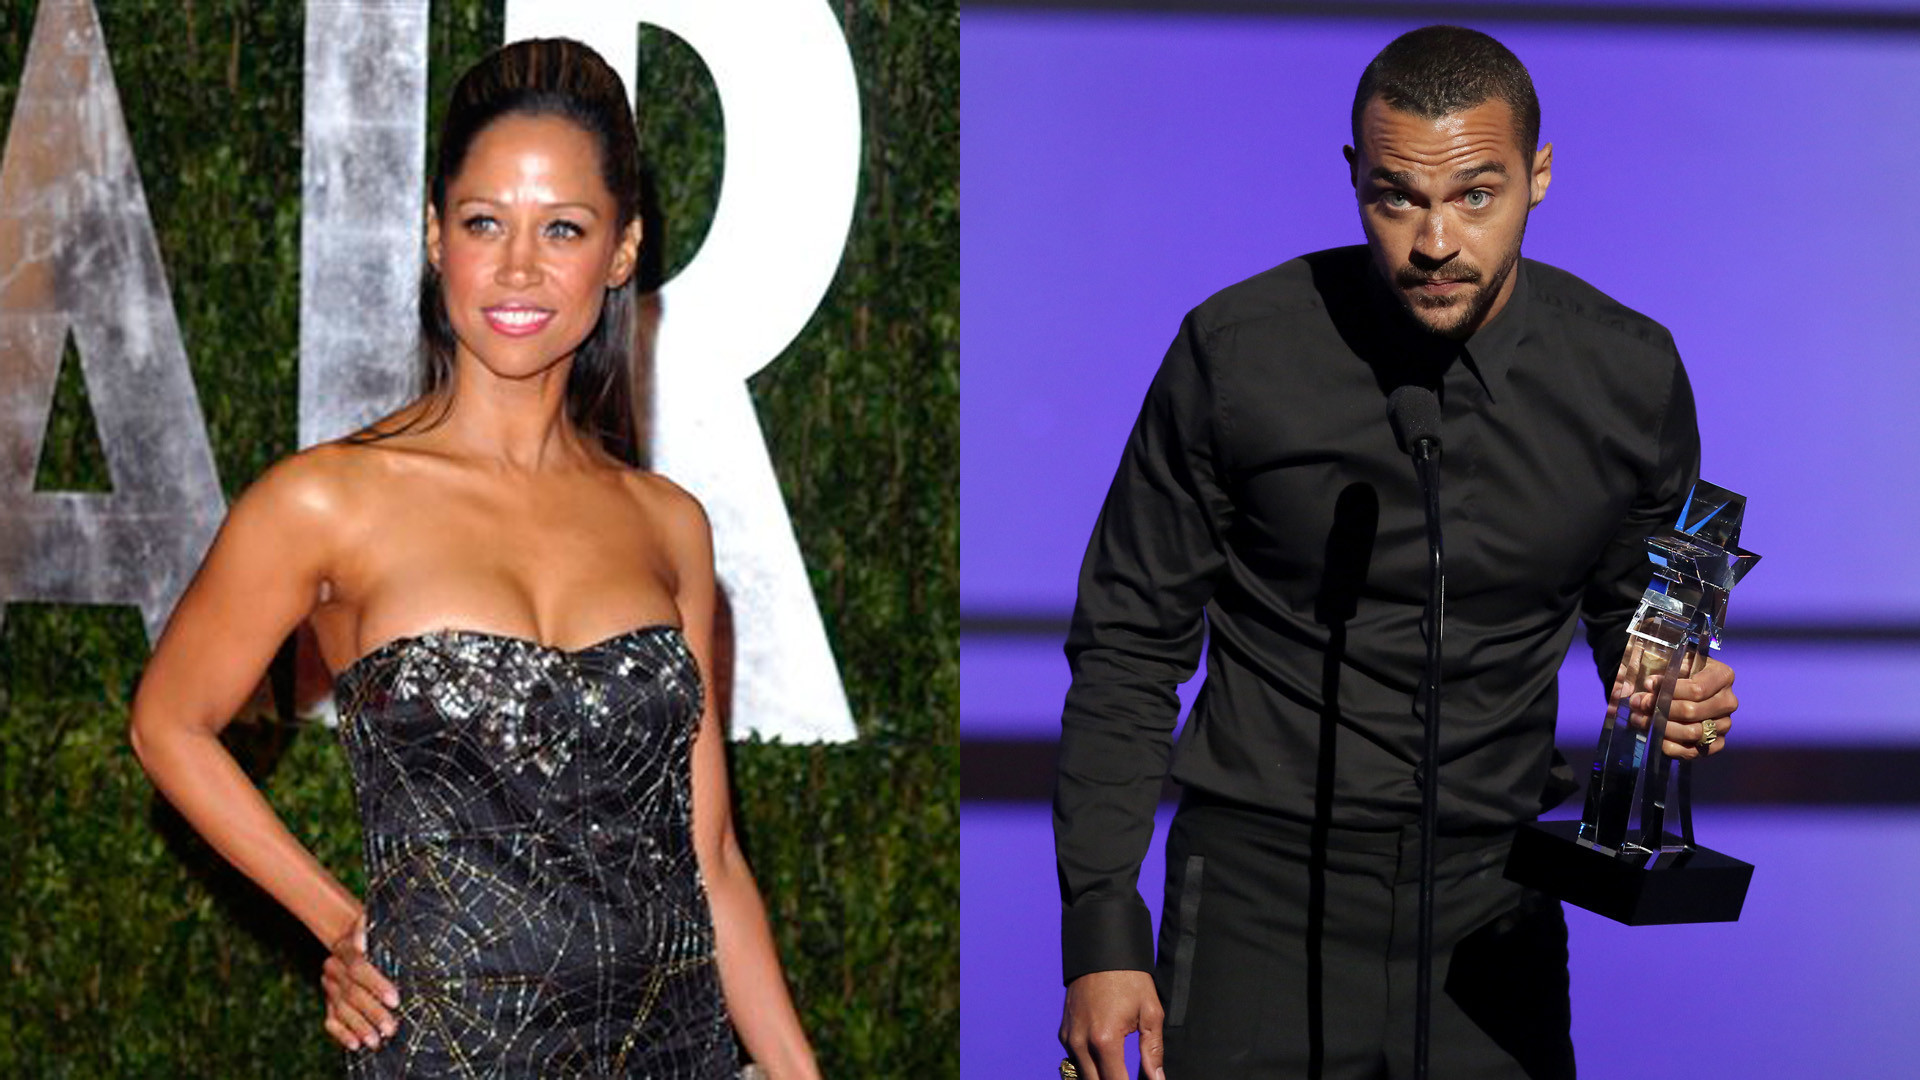 Stacey Dash calls Chicago native Jesse Williams a 'plantation slave'